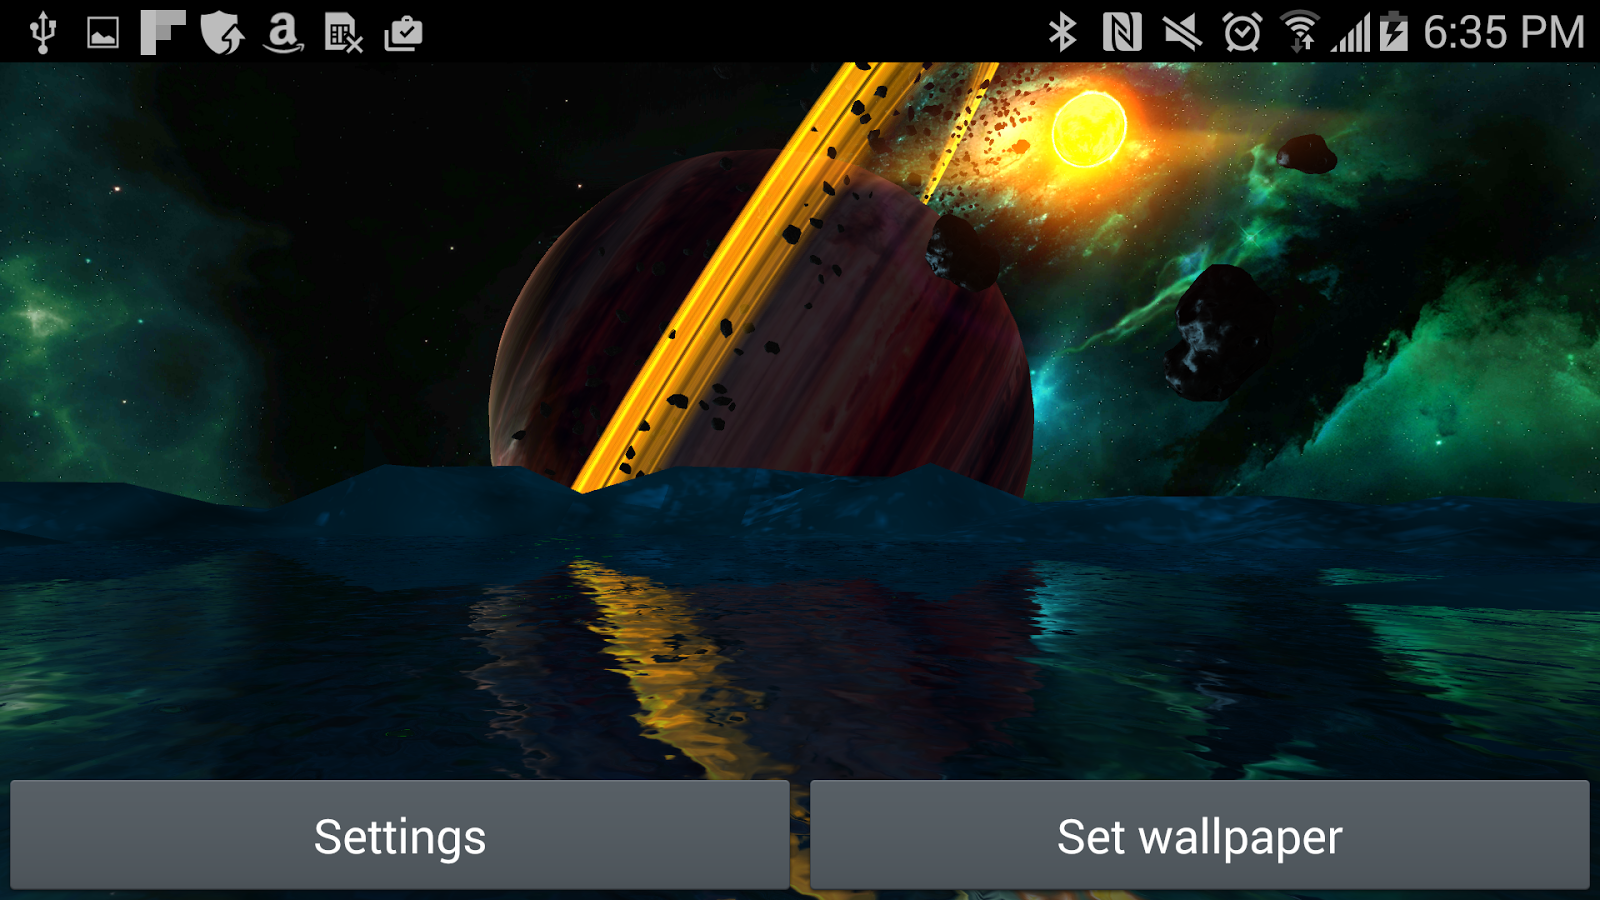 Far Galaxy 3D Live Wallpaper Screenshot 7